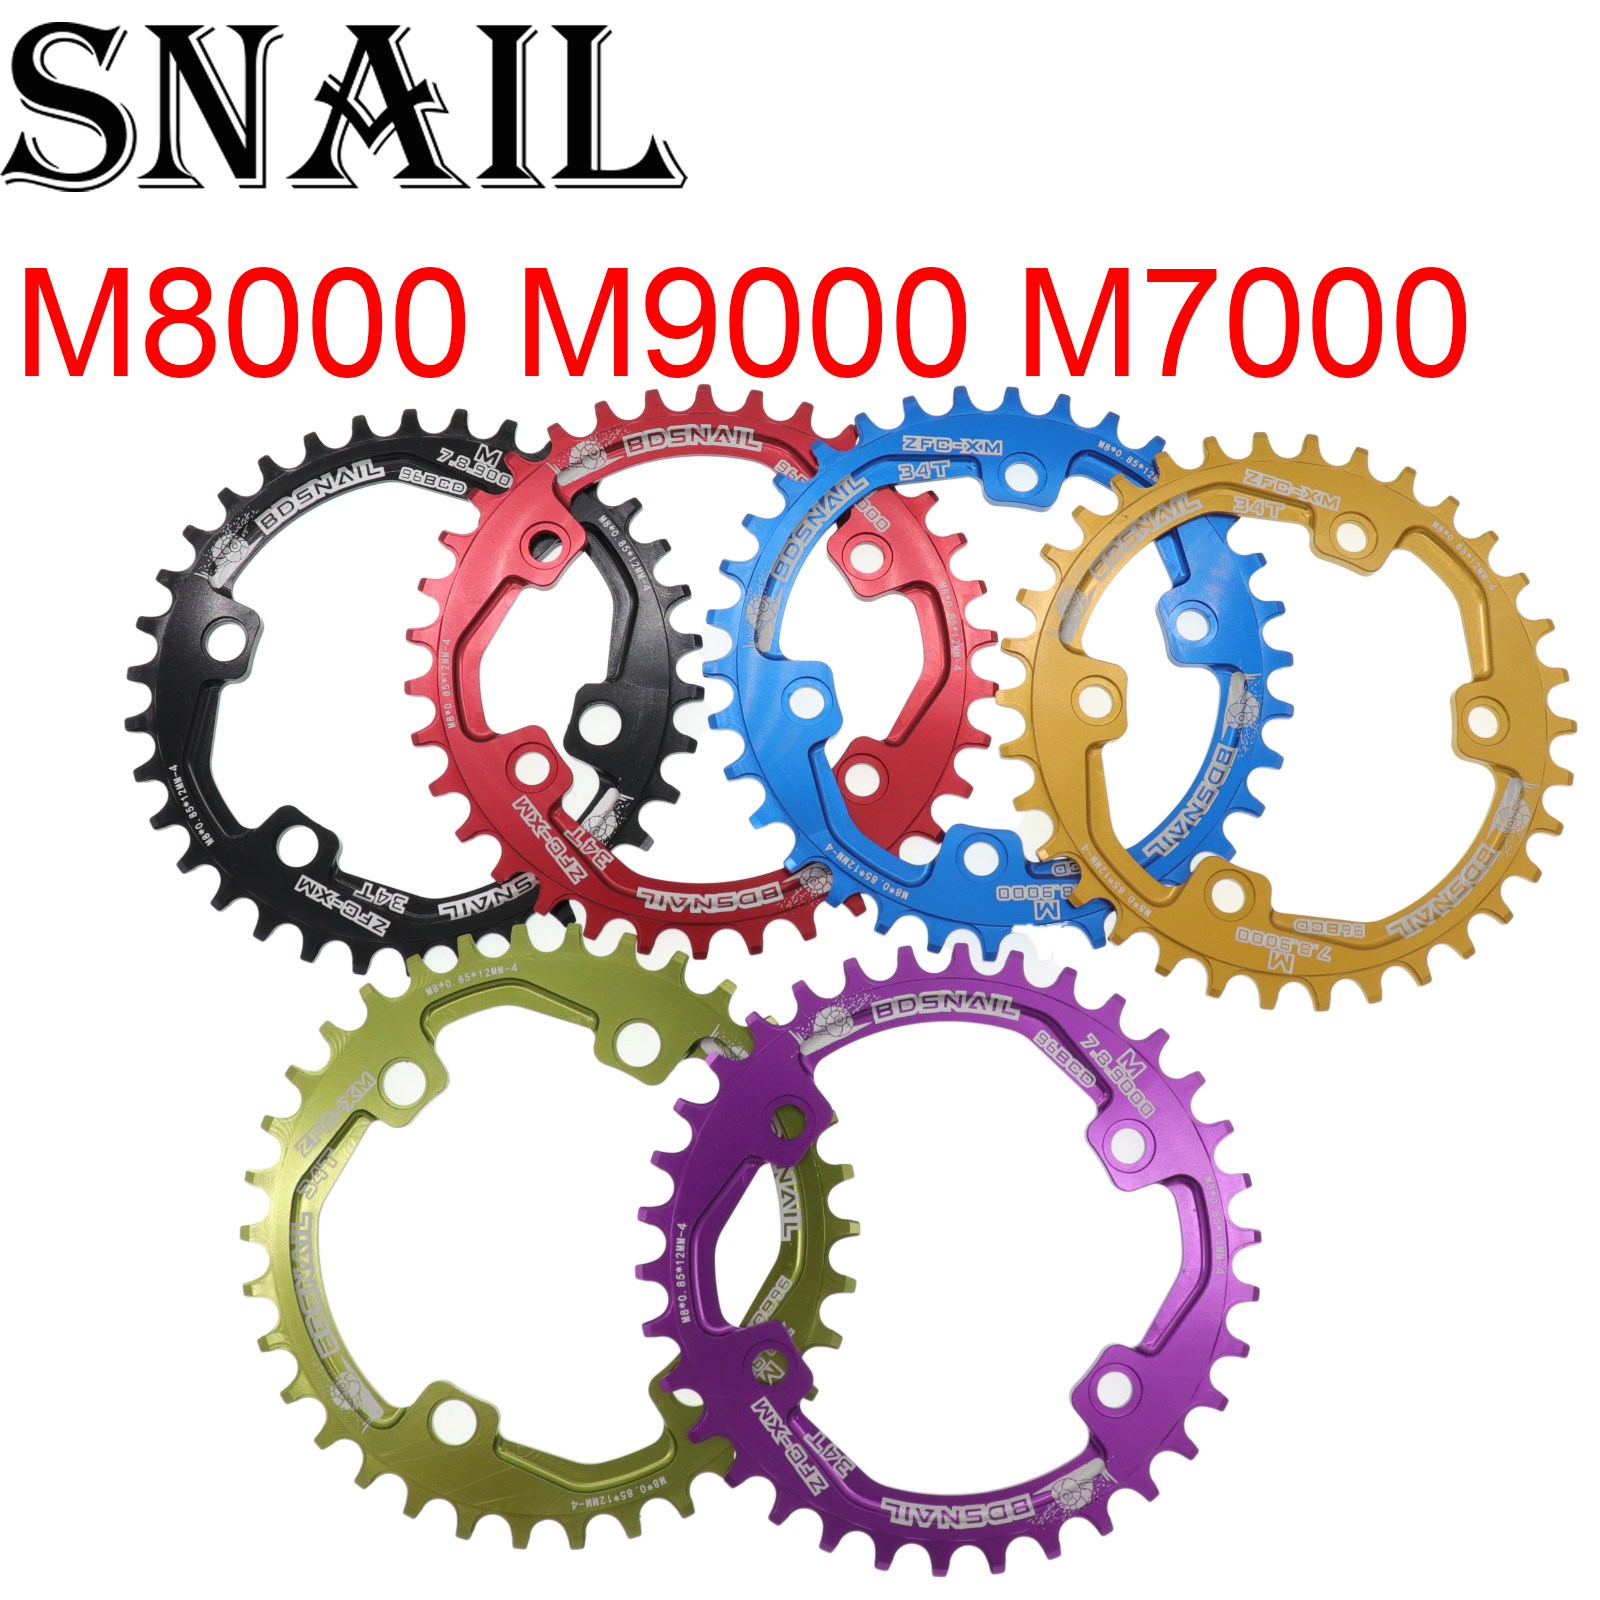 Snail <font><b>Chainring</b></font> Round for Shimano <font><b>M7000</b></font> M8000 M9000 30T/32T/34T/36T/38T 96 BCD Cycling Bike Bicycle Chainwheel tooth plate 96bcd image